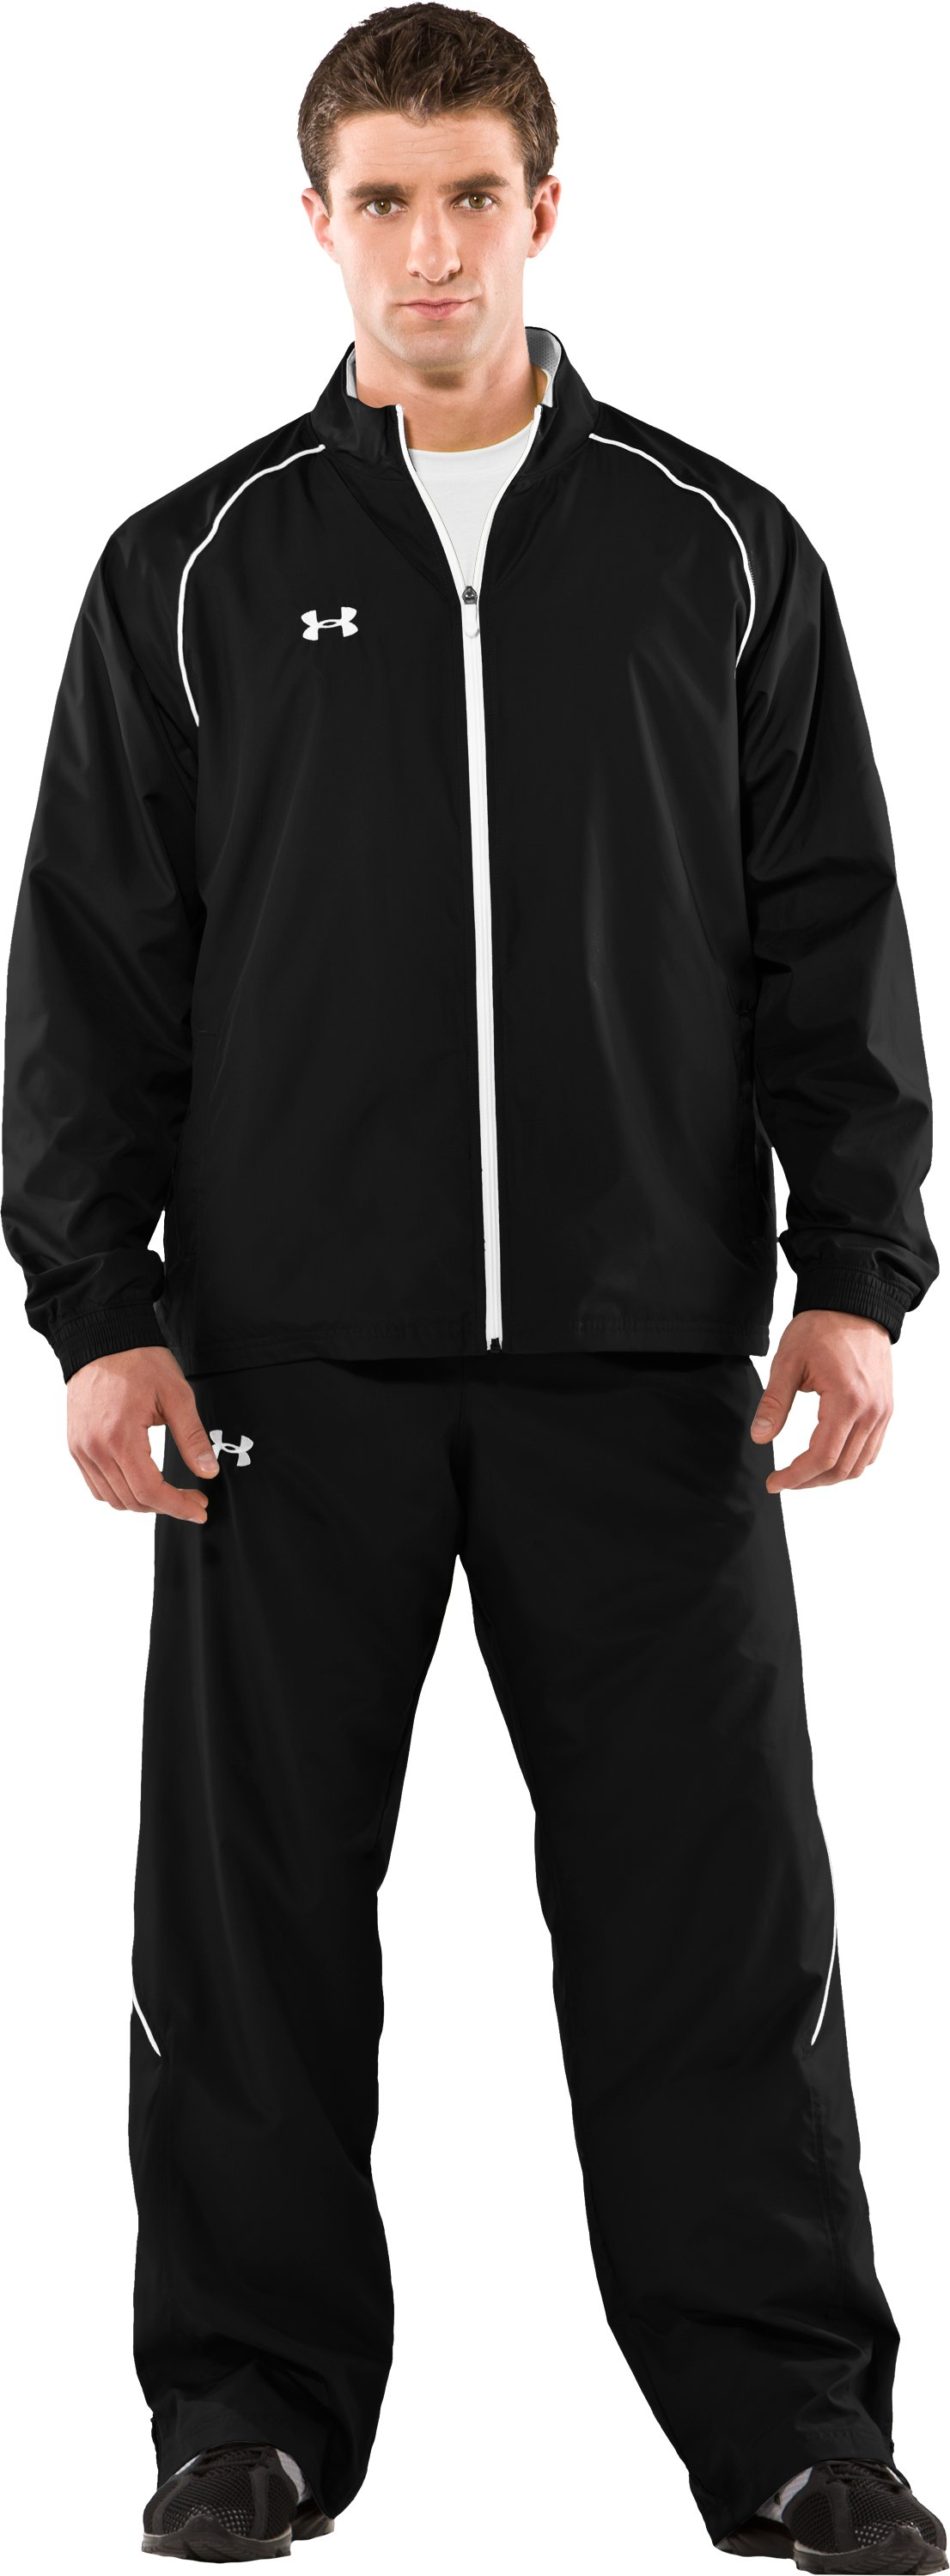 Men's UA Advance Woven Warm-Up Jacket, Black